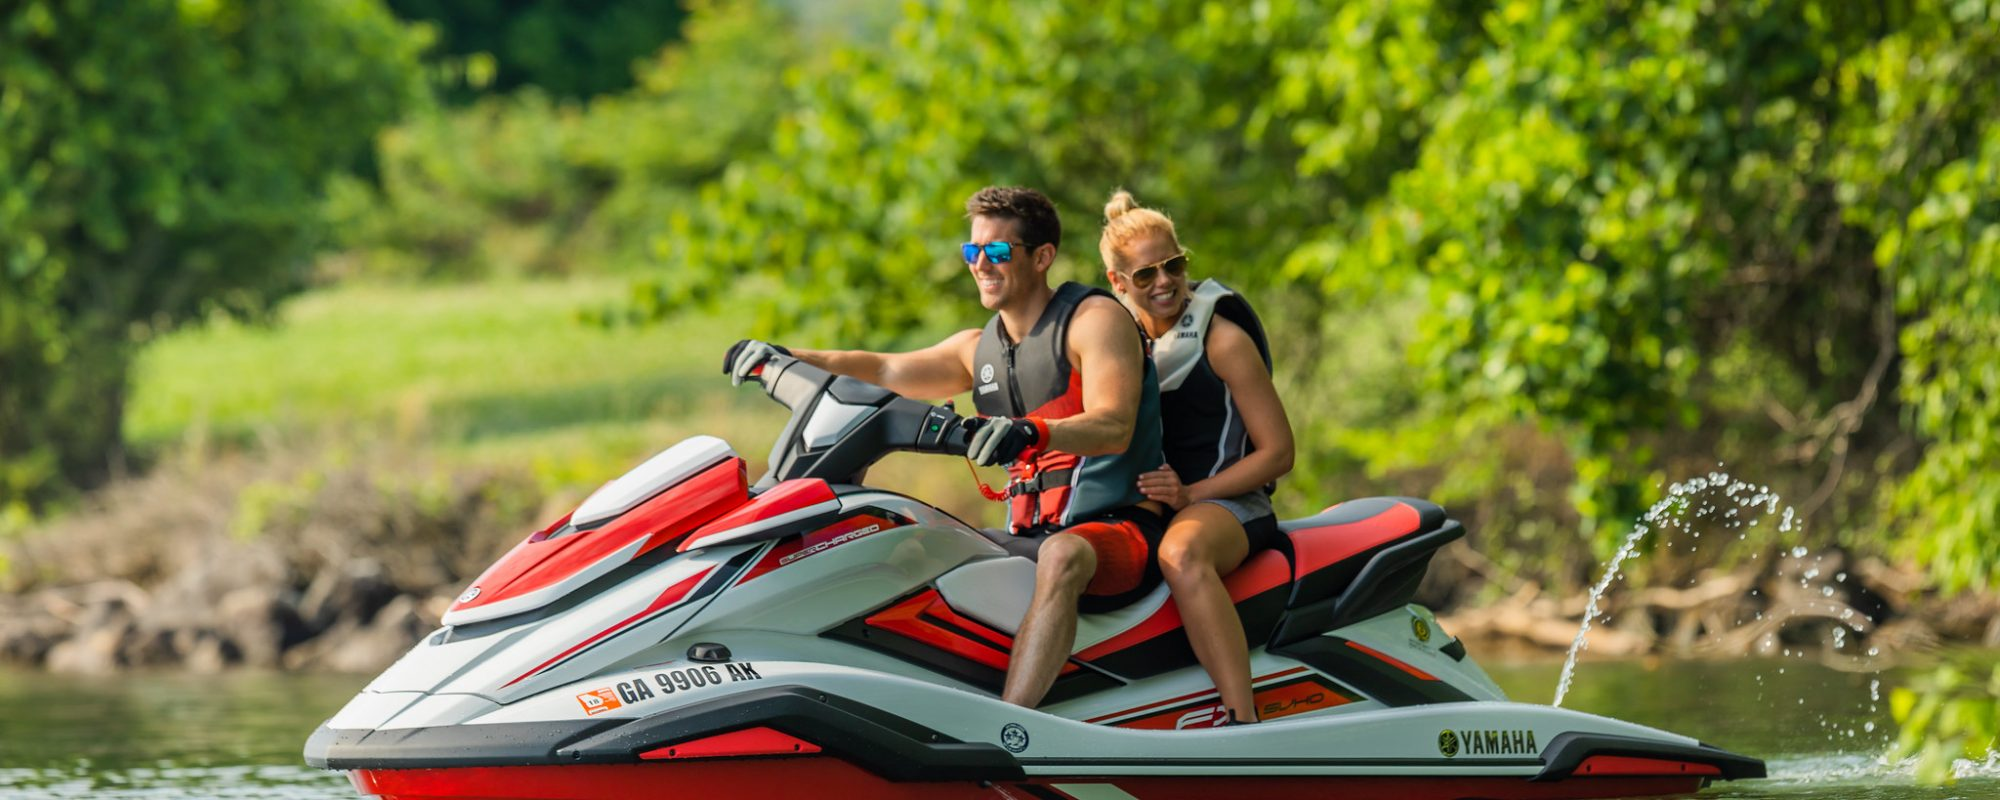 A couple sitting on a Yamaha Wave runner smiling on the lake